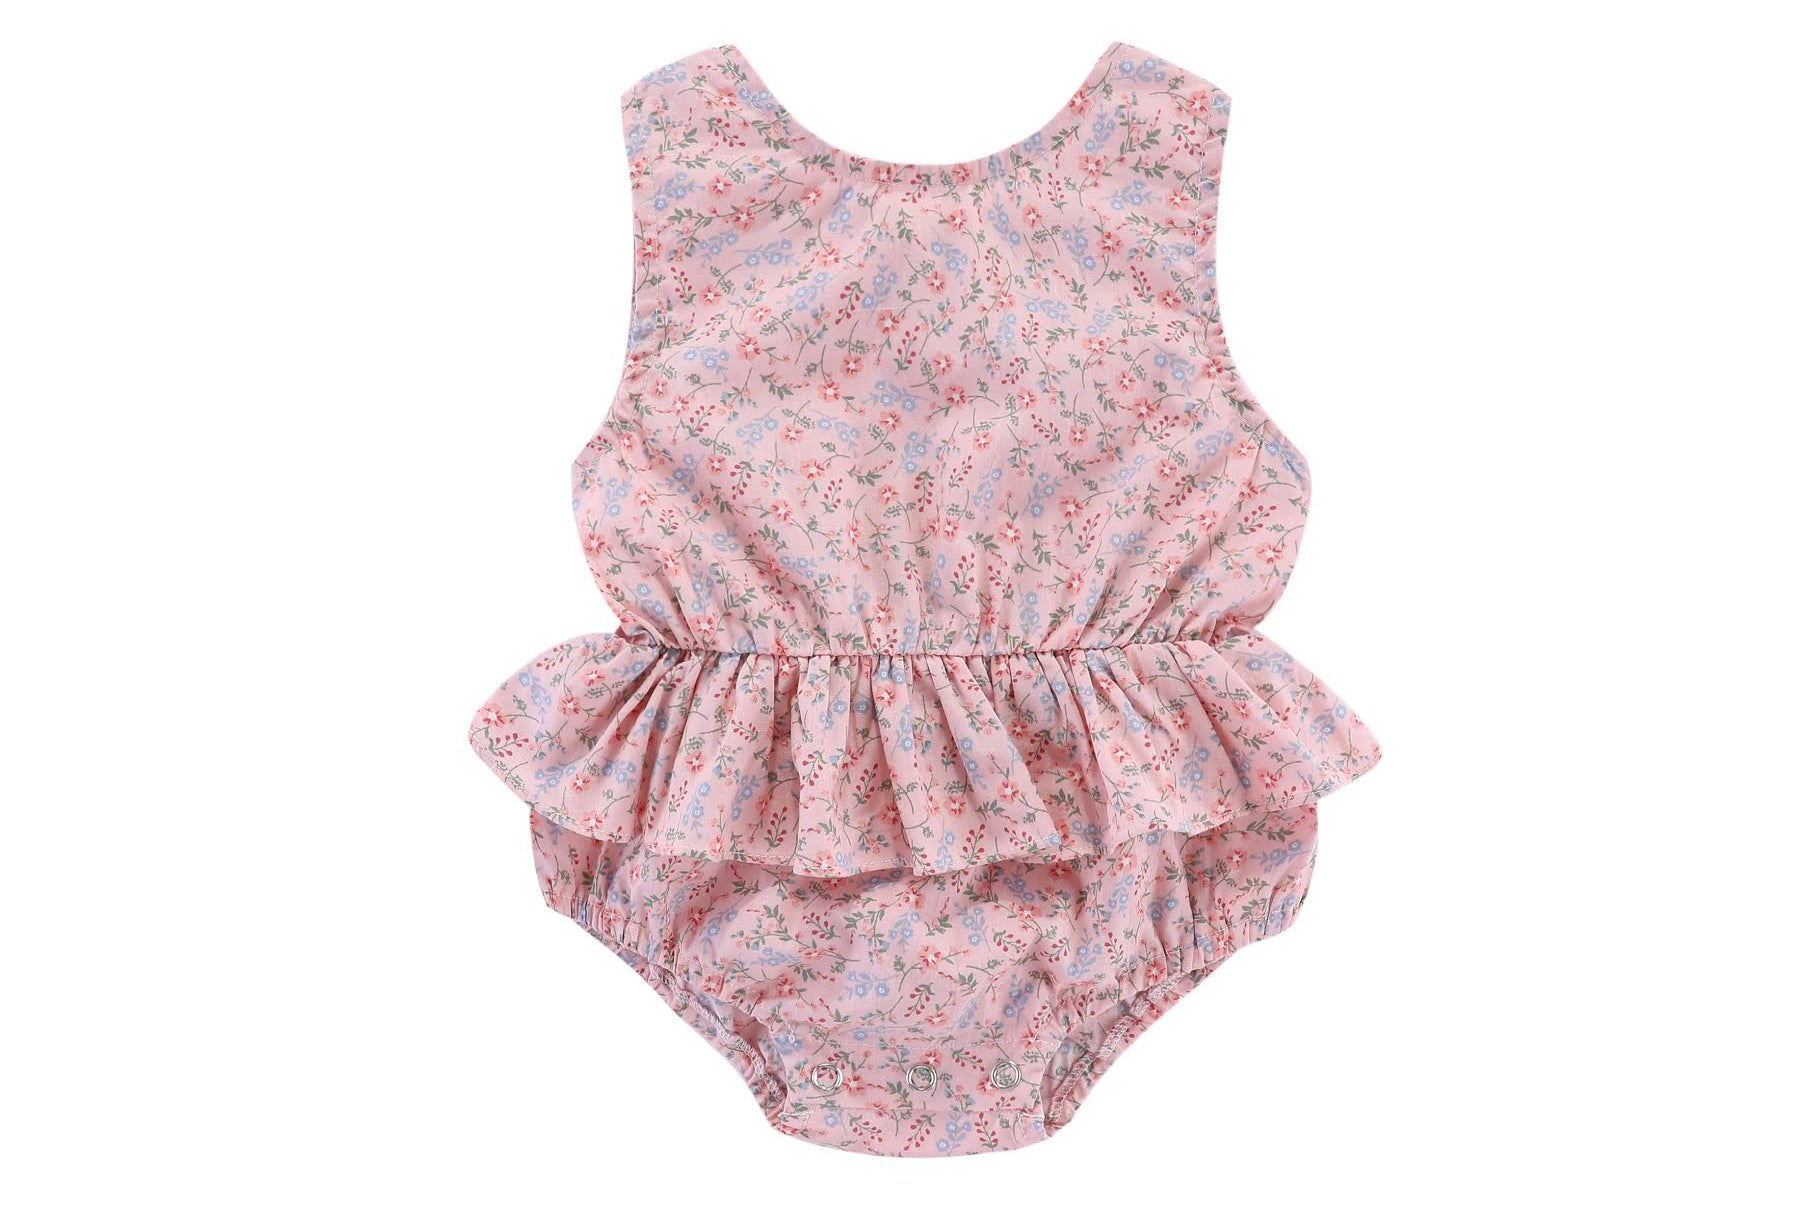 Pontine romper: 0-3M, 3-6M, 6-12M ONLY LEFT